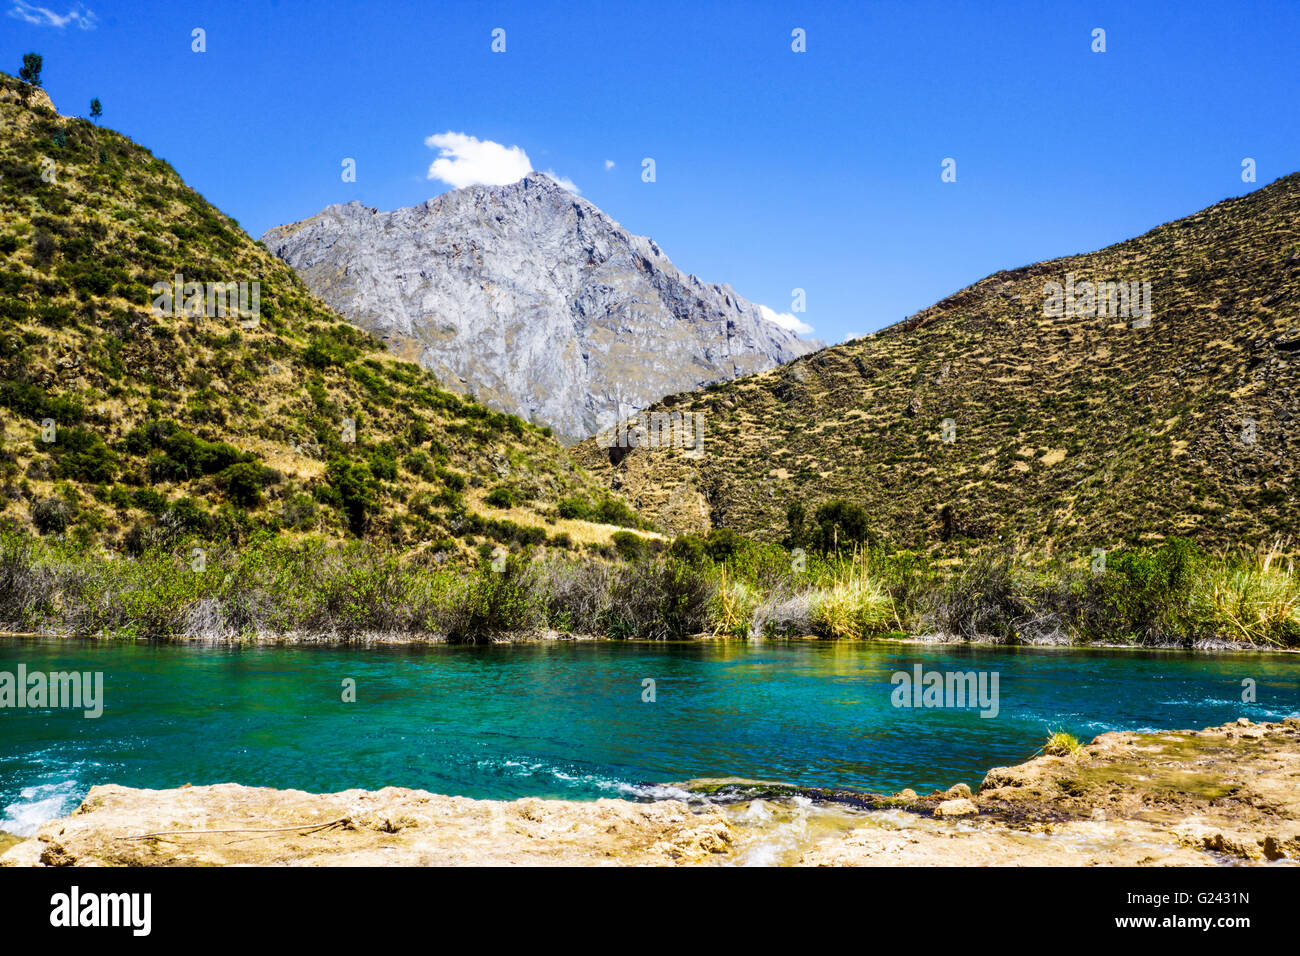 Waterscape in the Peruvian Andes. Photographed near Huancayo, Peru - Stock Image